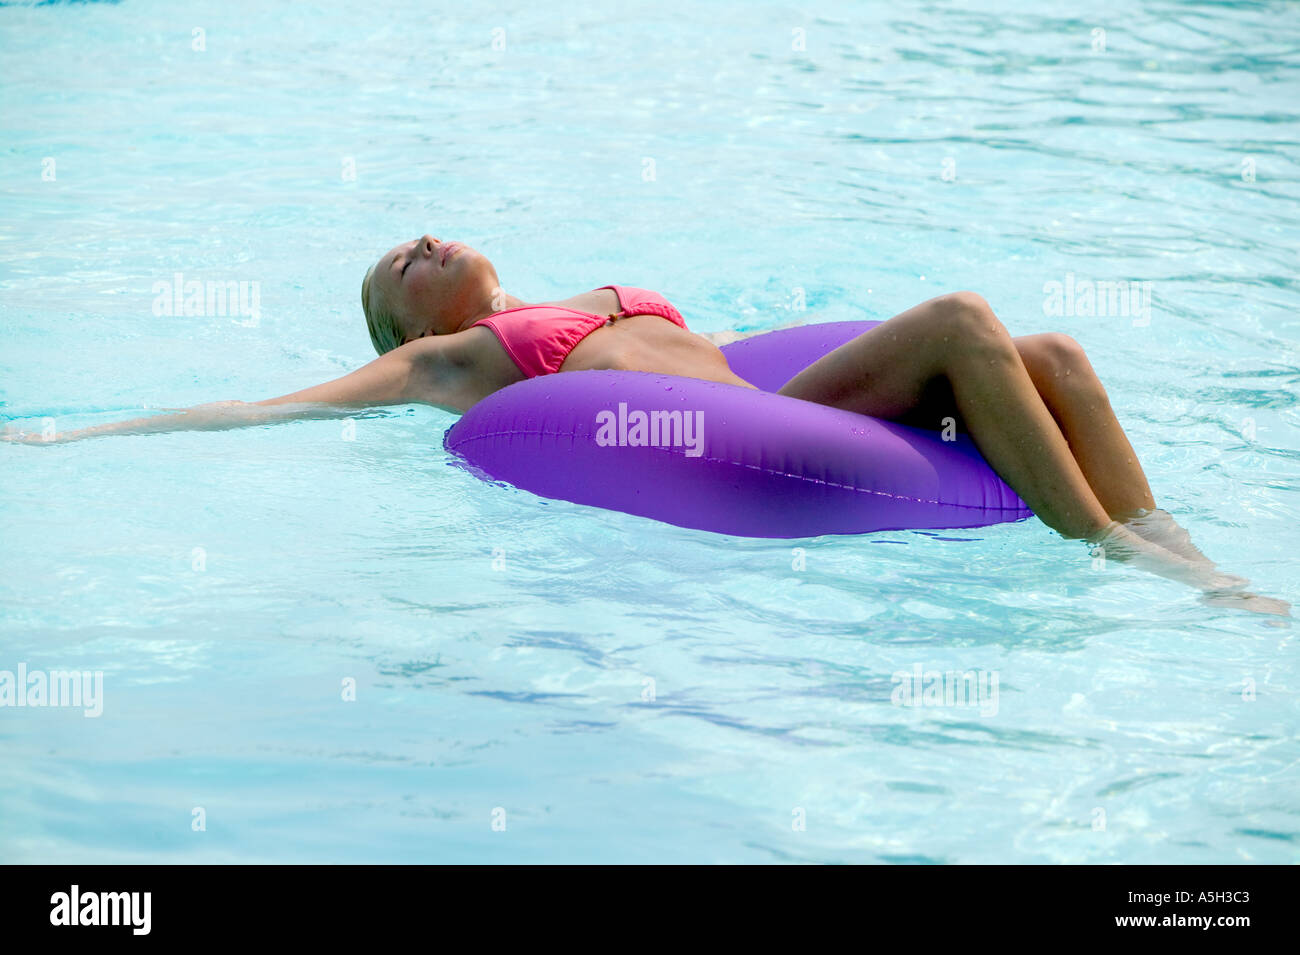 A young woman floating in a pool - Stock Image